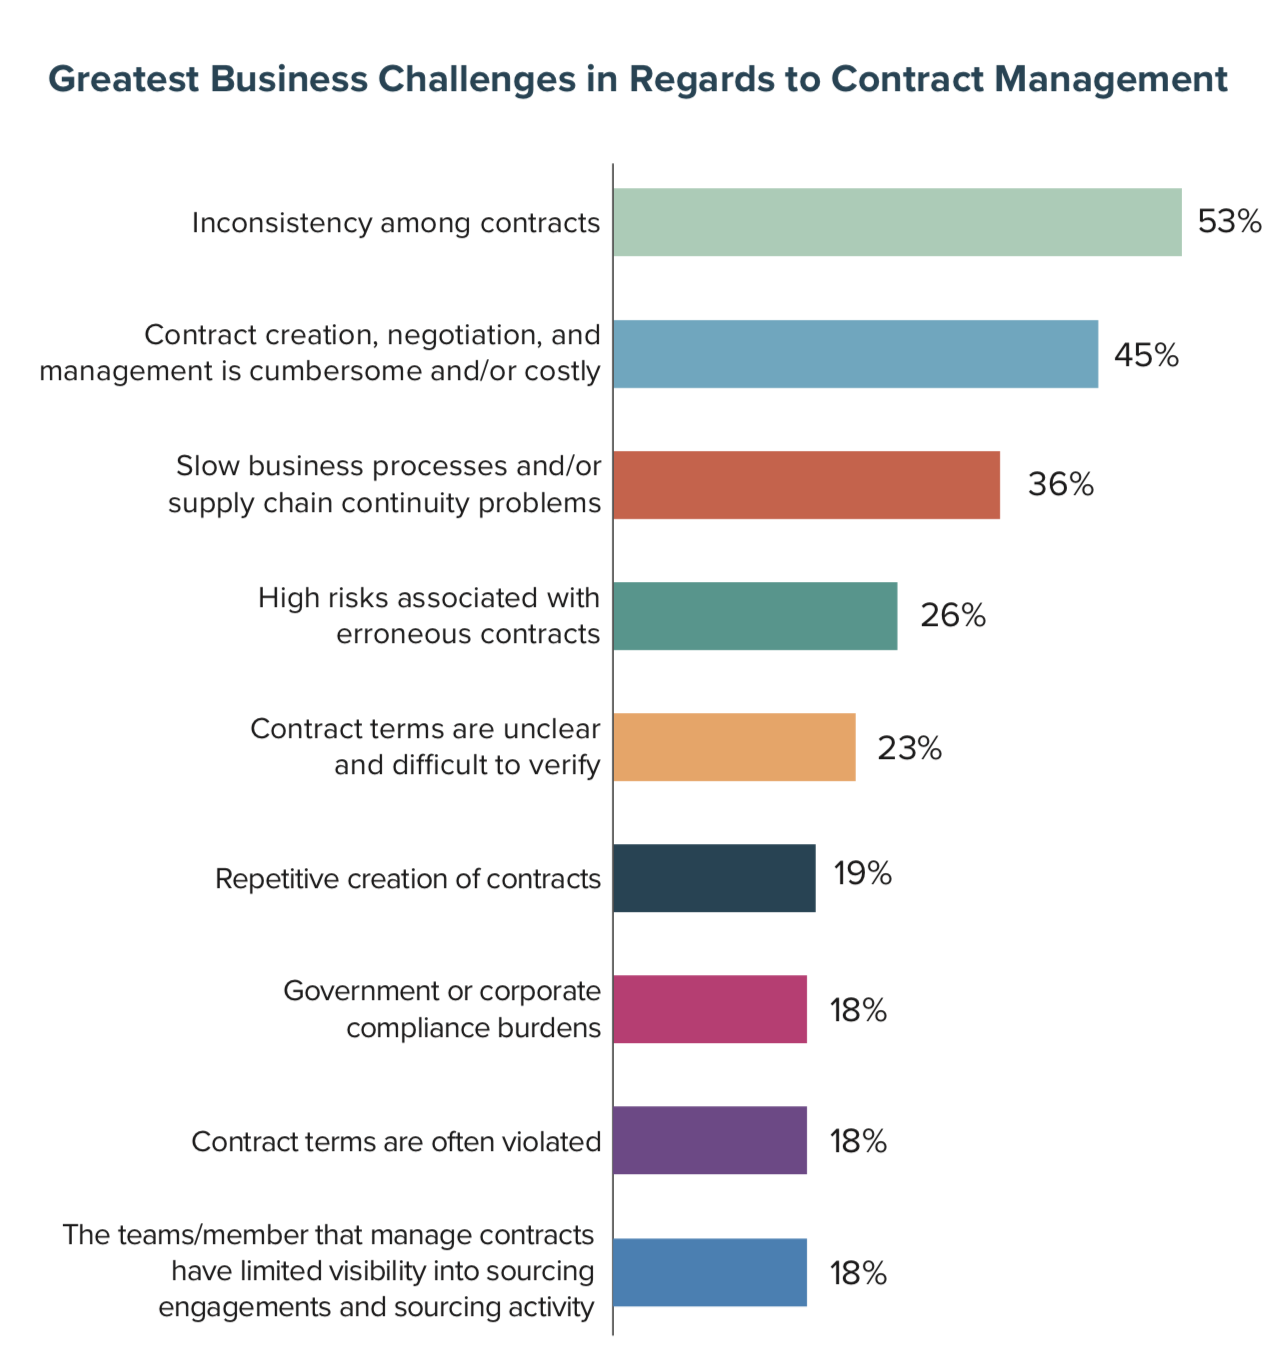 Greatest Business Challenges in Regards to Contract Management